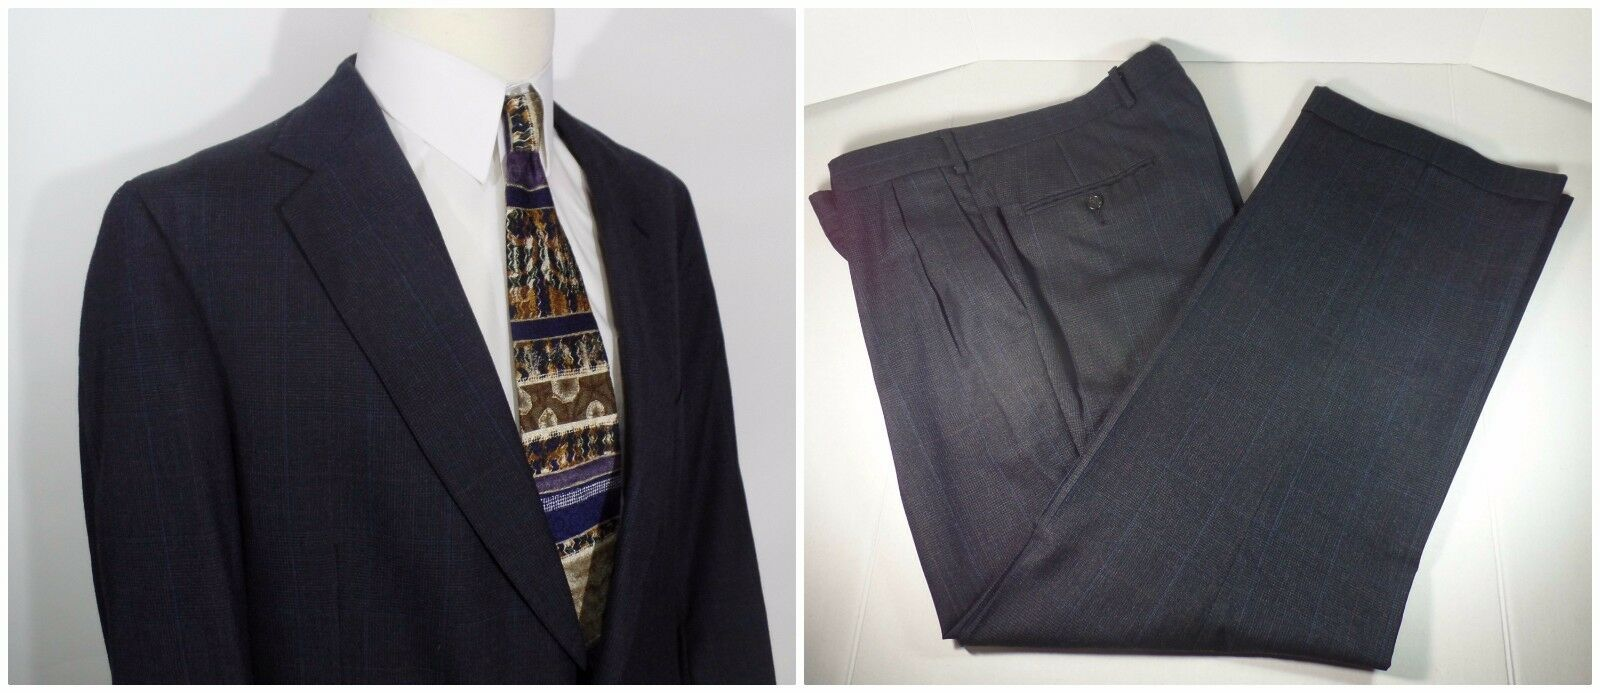 42R 36X30 2-Piece Suit by POLO UNIVERSITY CLUB RALPH LAUREN 42 Regular 36W 30L